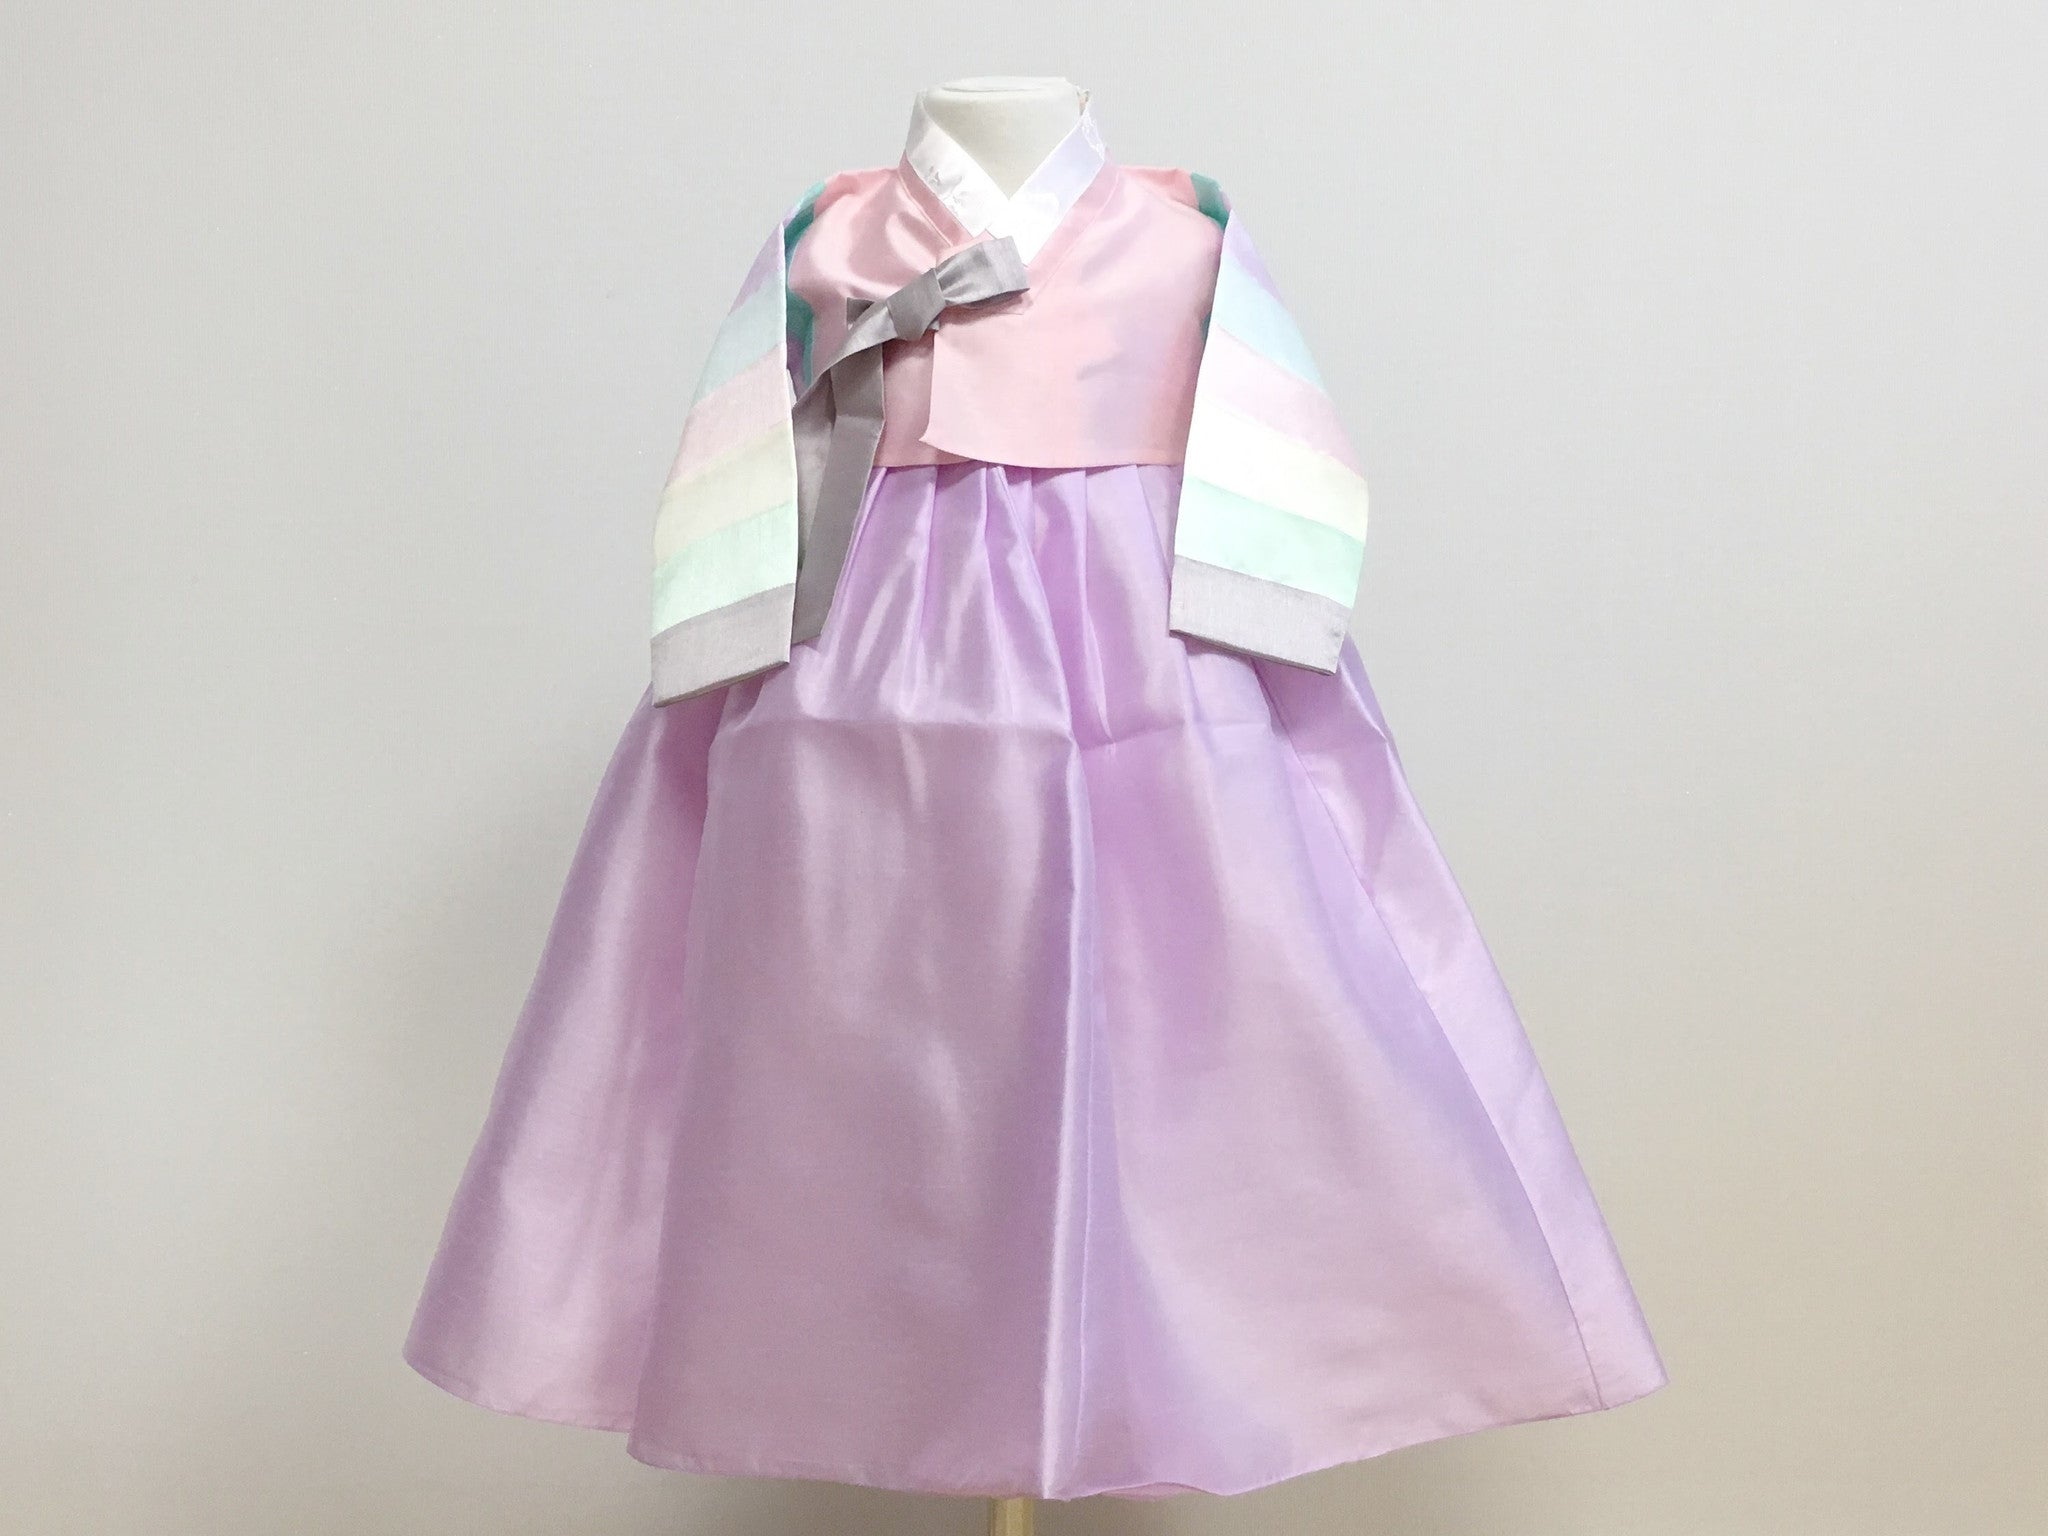 Pastel Girl's Hanbok (Rainbow Pink Top)